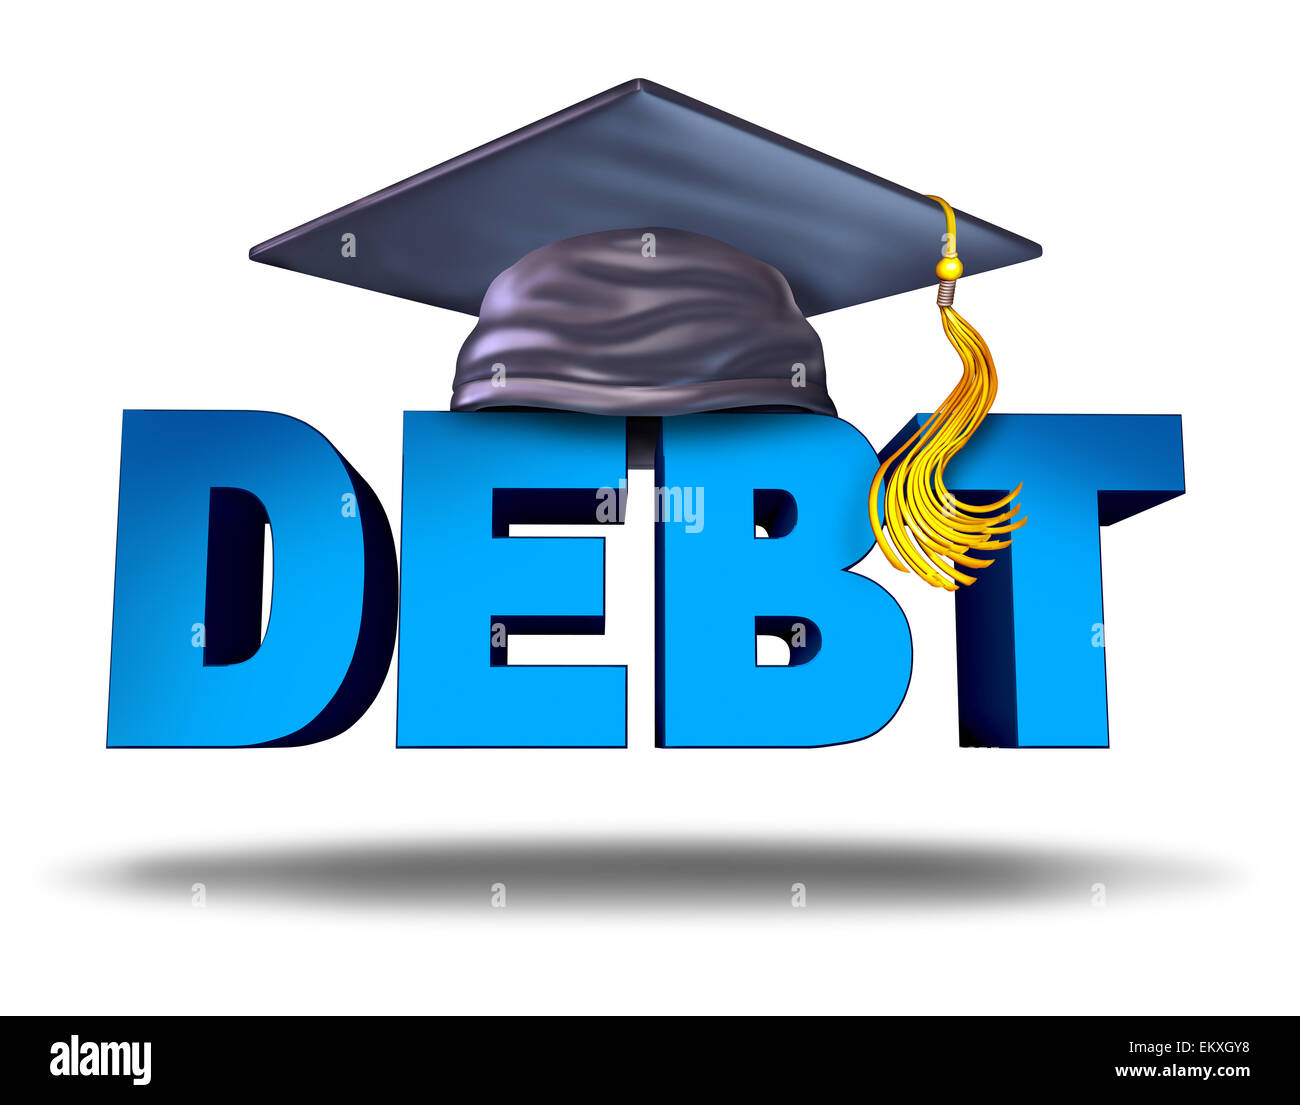 Student debt financial concept as a graduation mortar board on the word for school tuition loan repayment or lending - Stock Image